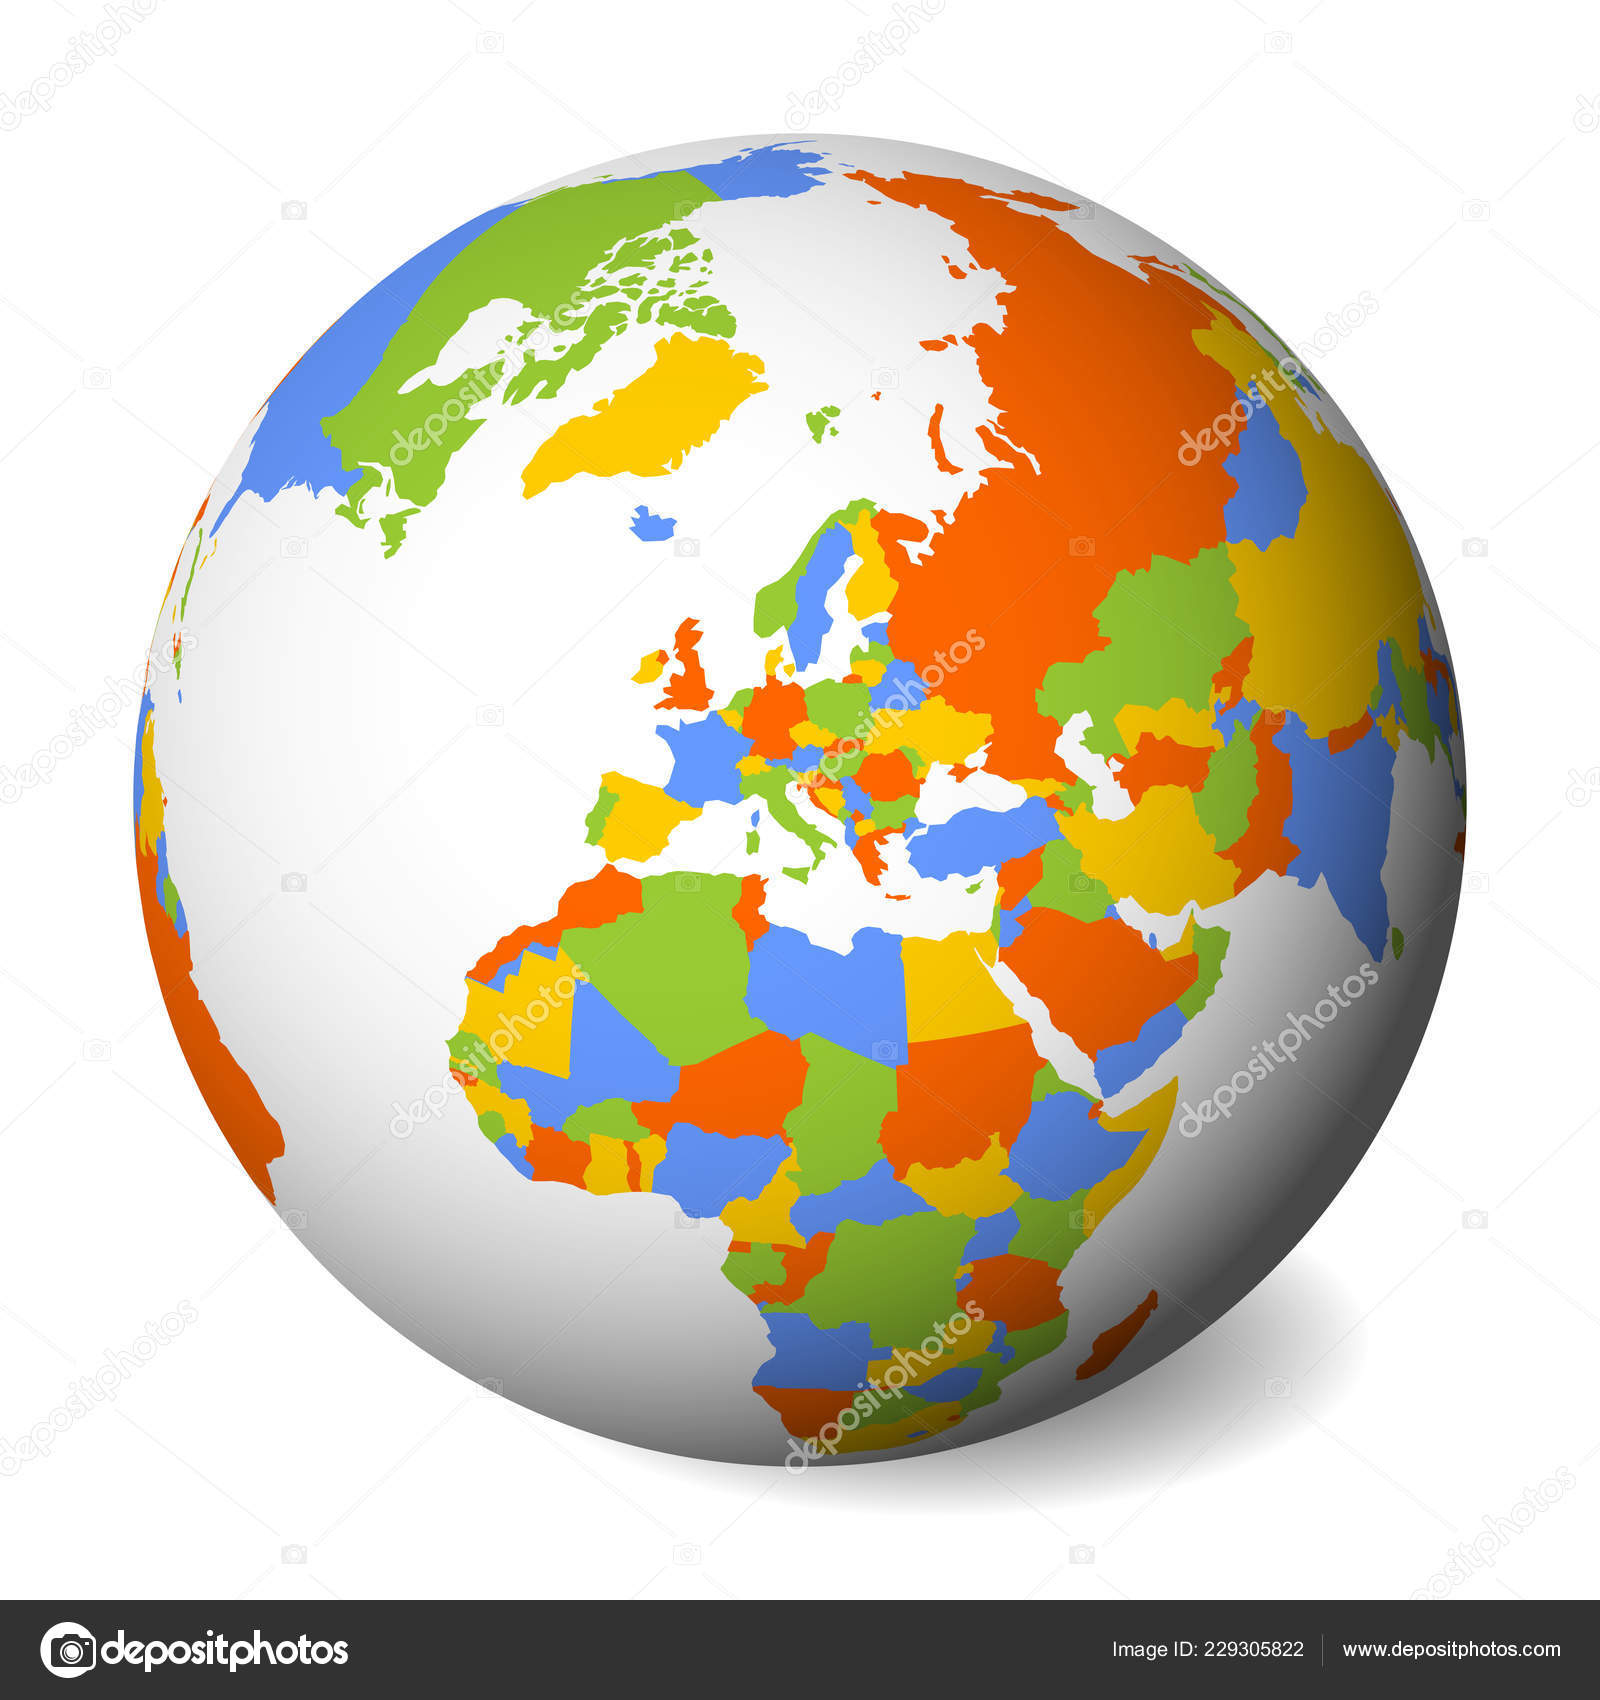 Blank political map of Europe. 3D Earth globe with colored map ...